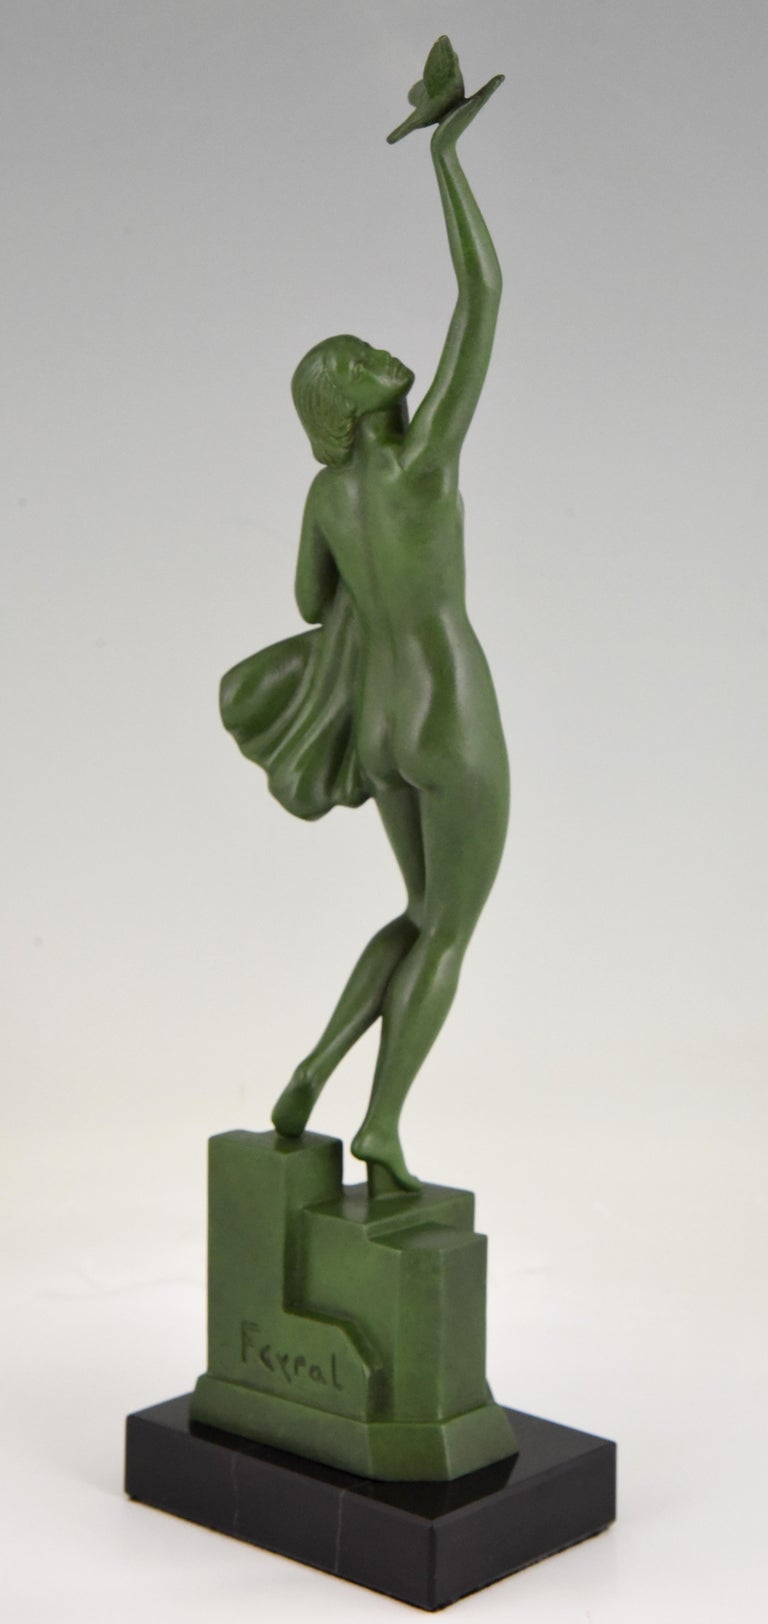 20th Century Art Deco Sculpture of a Nude with Dove Fayral Pierre Le Faguays, France, 1930 For Sale